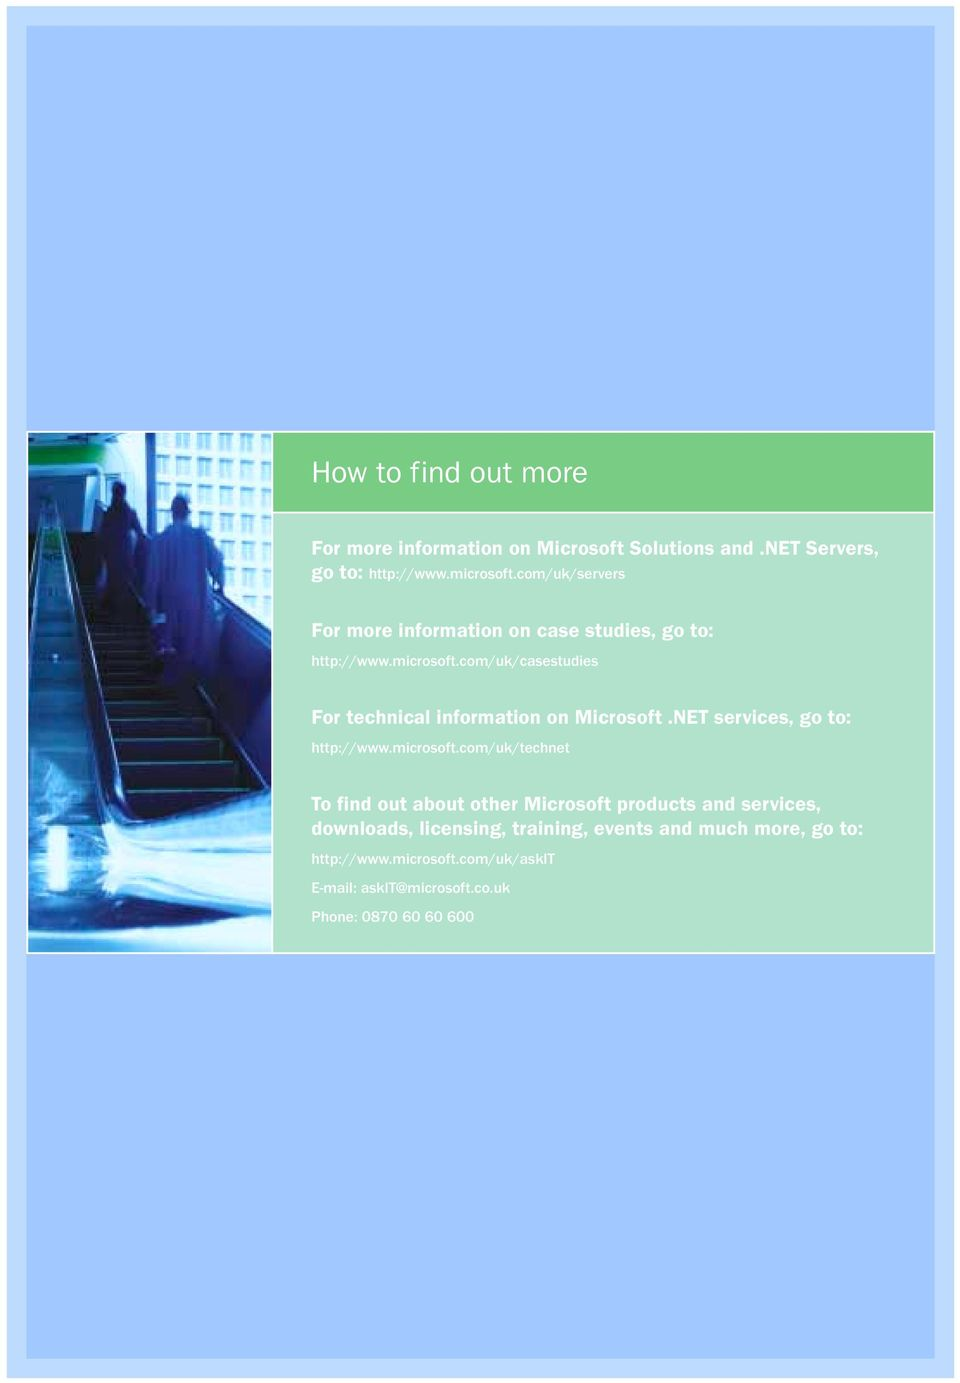 com/uk/casestudies For technical information on Microsoft.NET services, go to: http://www.microsoft.